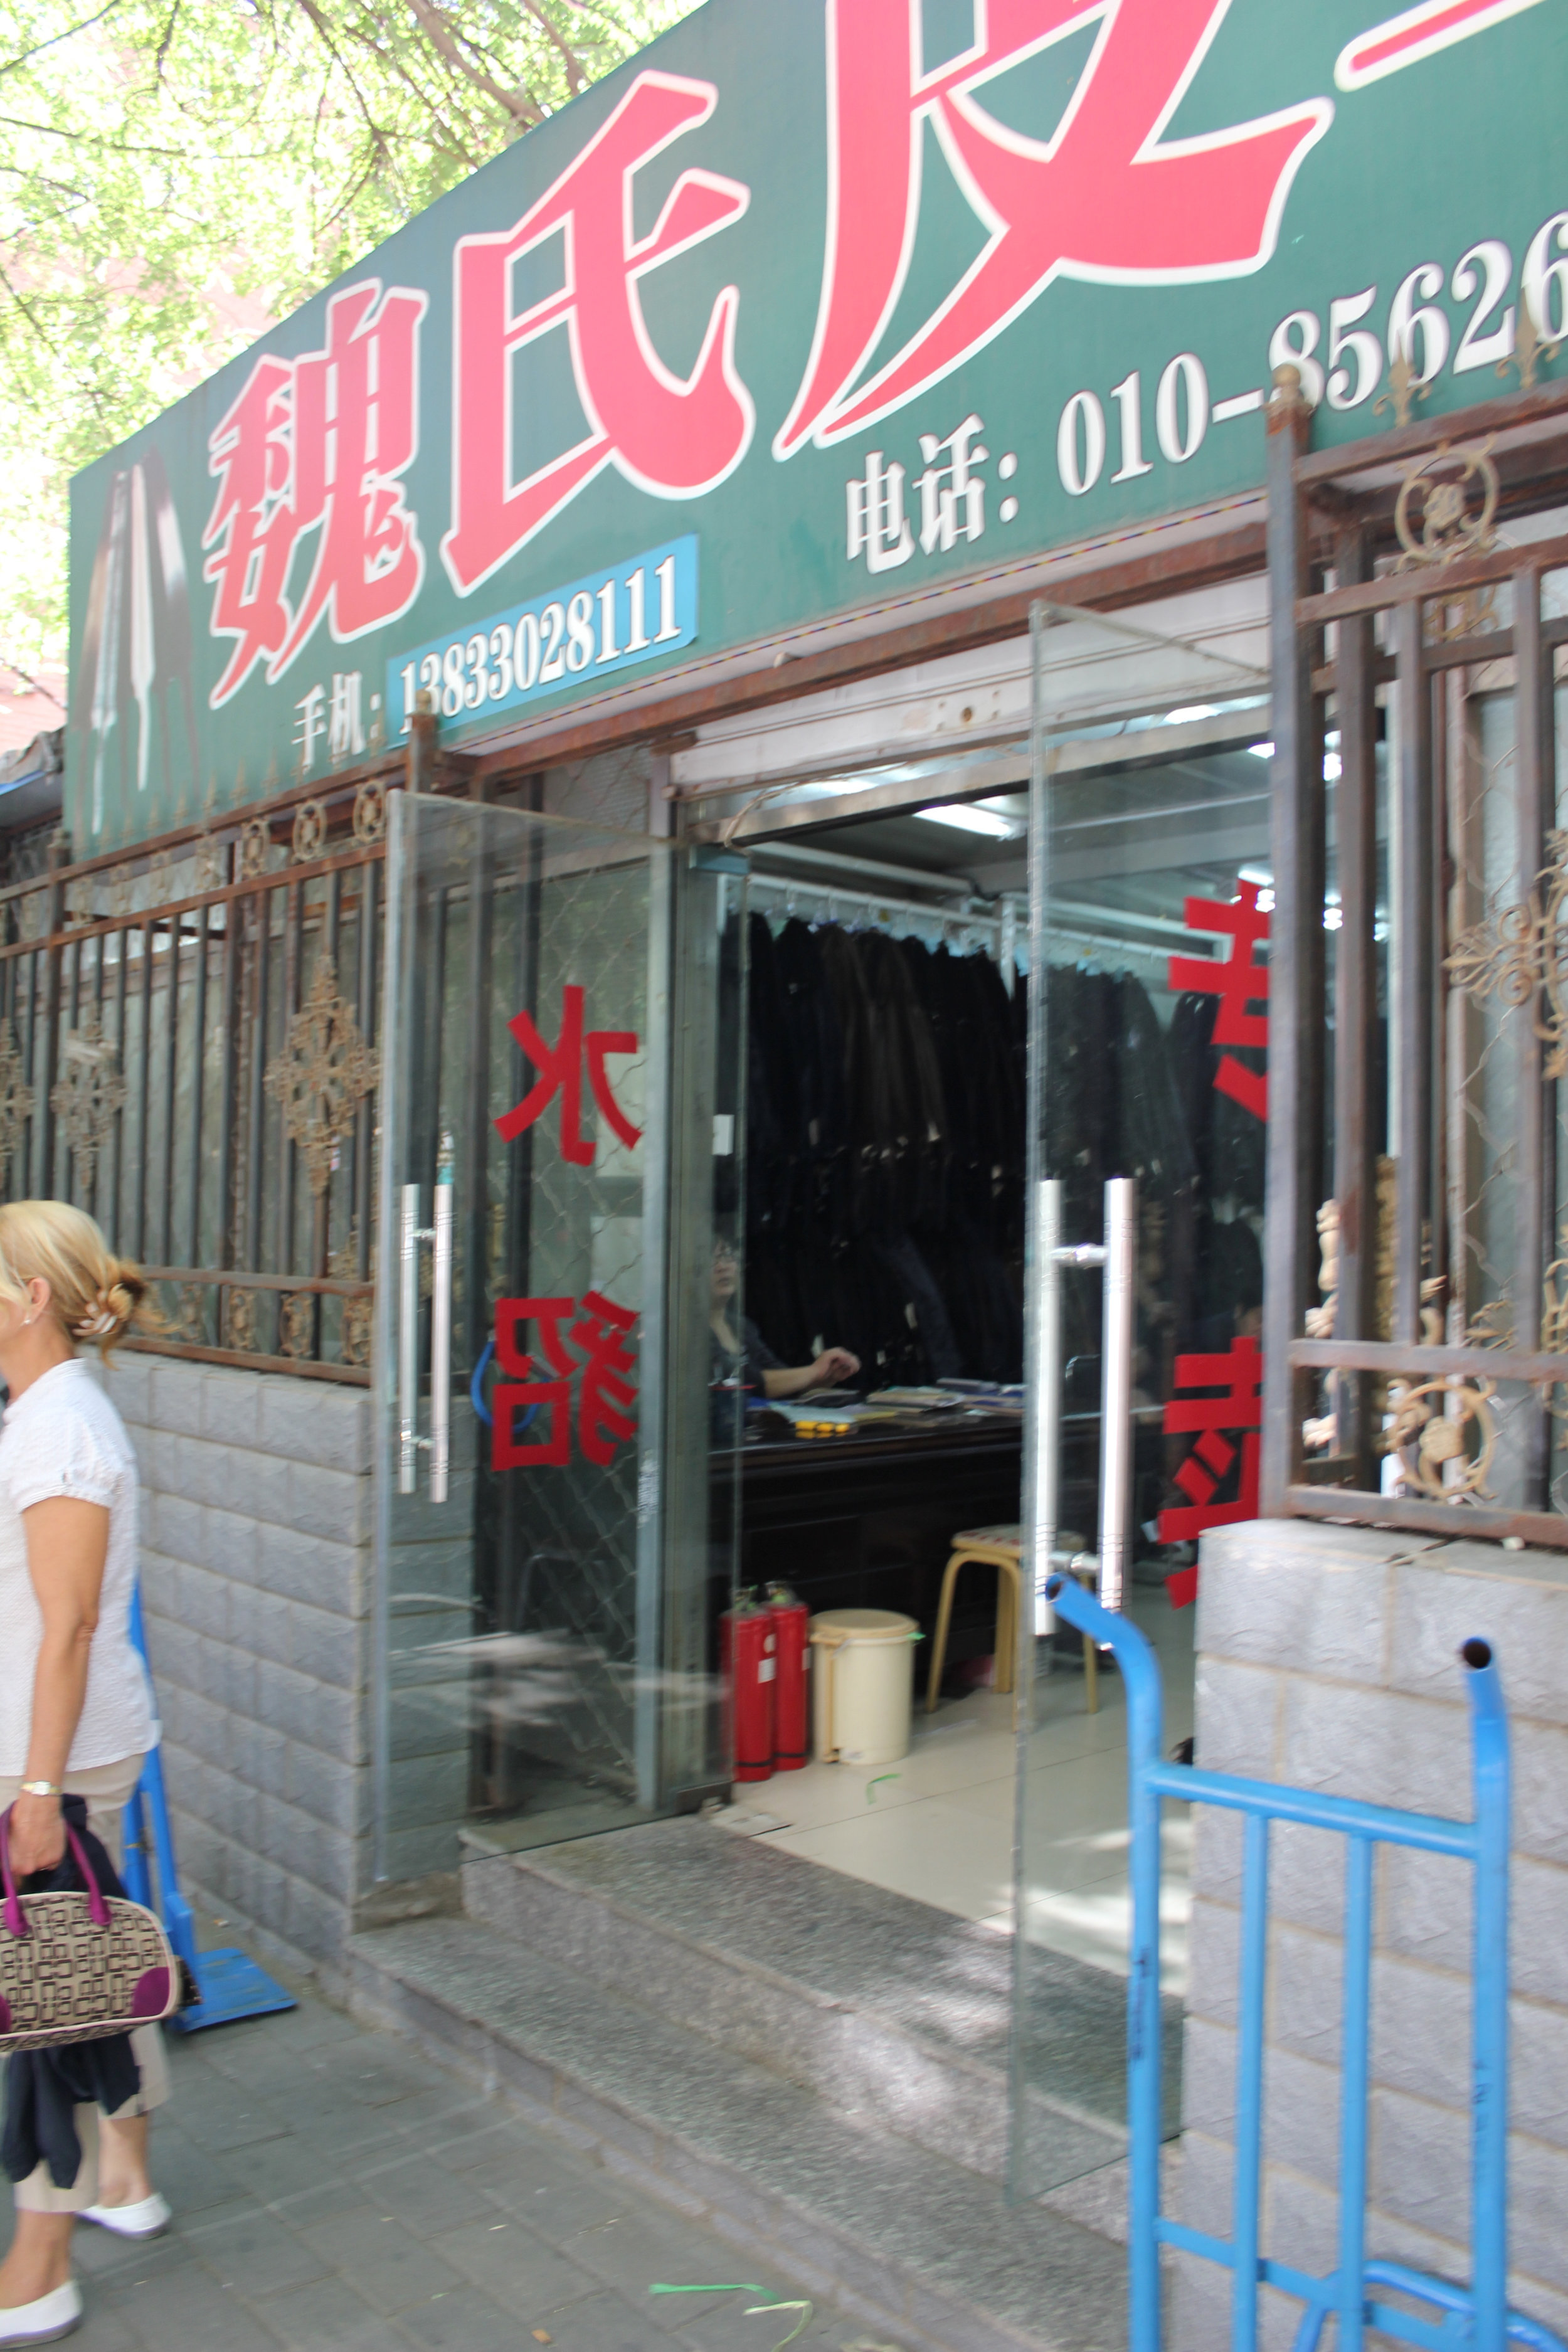 One of many storefronts in the skins trade district in Beijing.